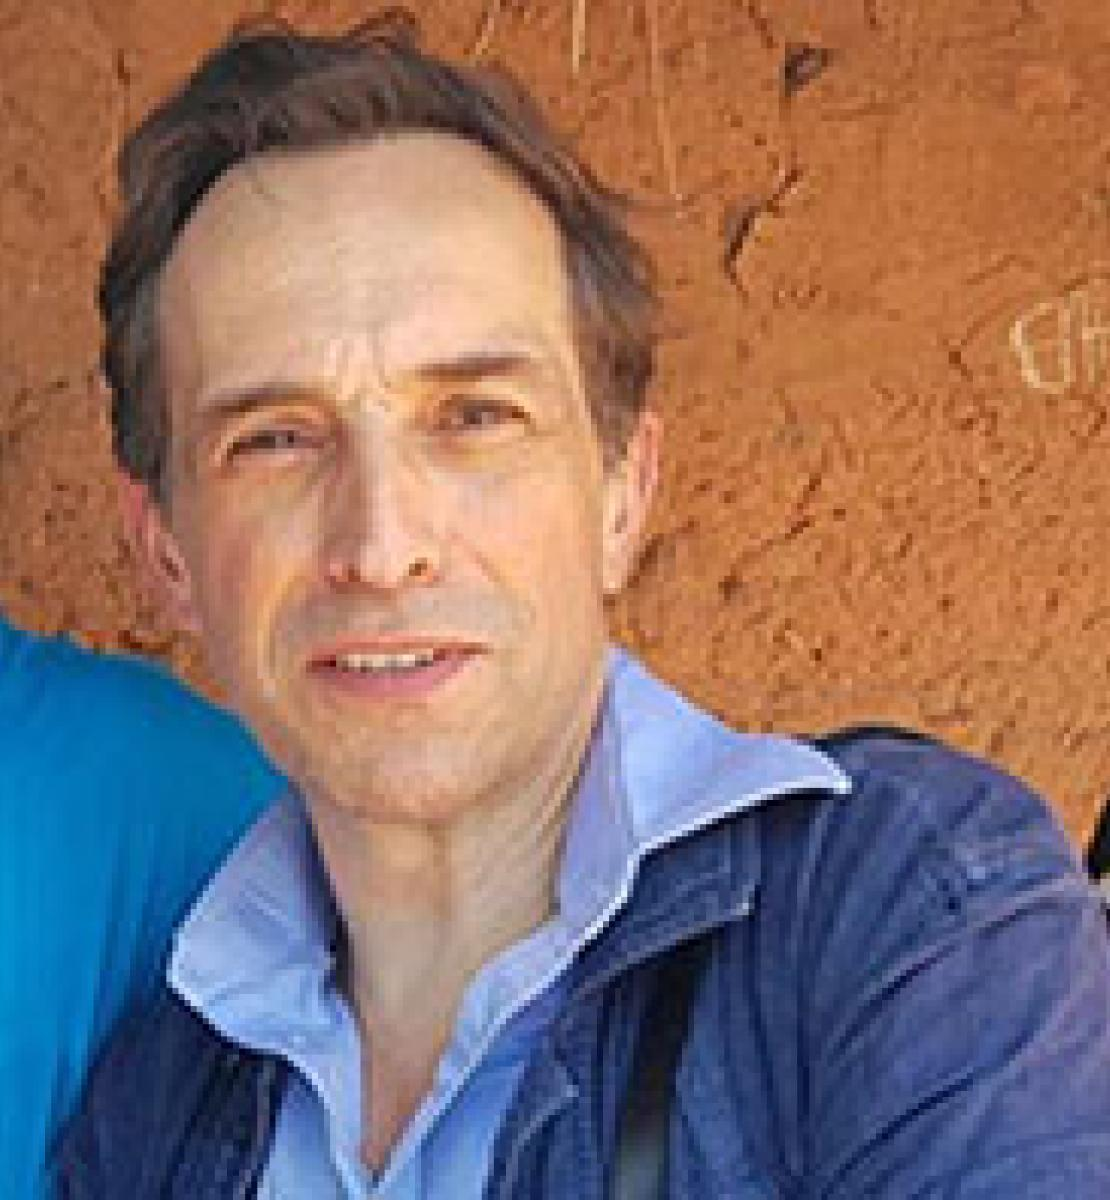 Photo shows Julien leaning towards the shoulder of another person. He's wearing a denim jacket, blue shirt and stands in front of a mud-coloured cement wall.